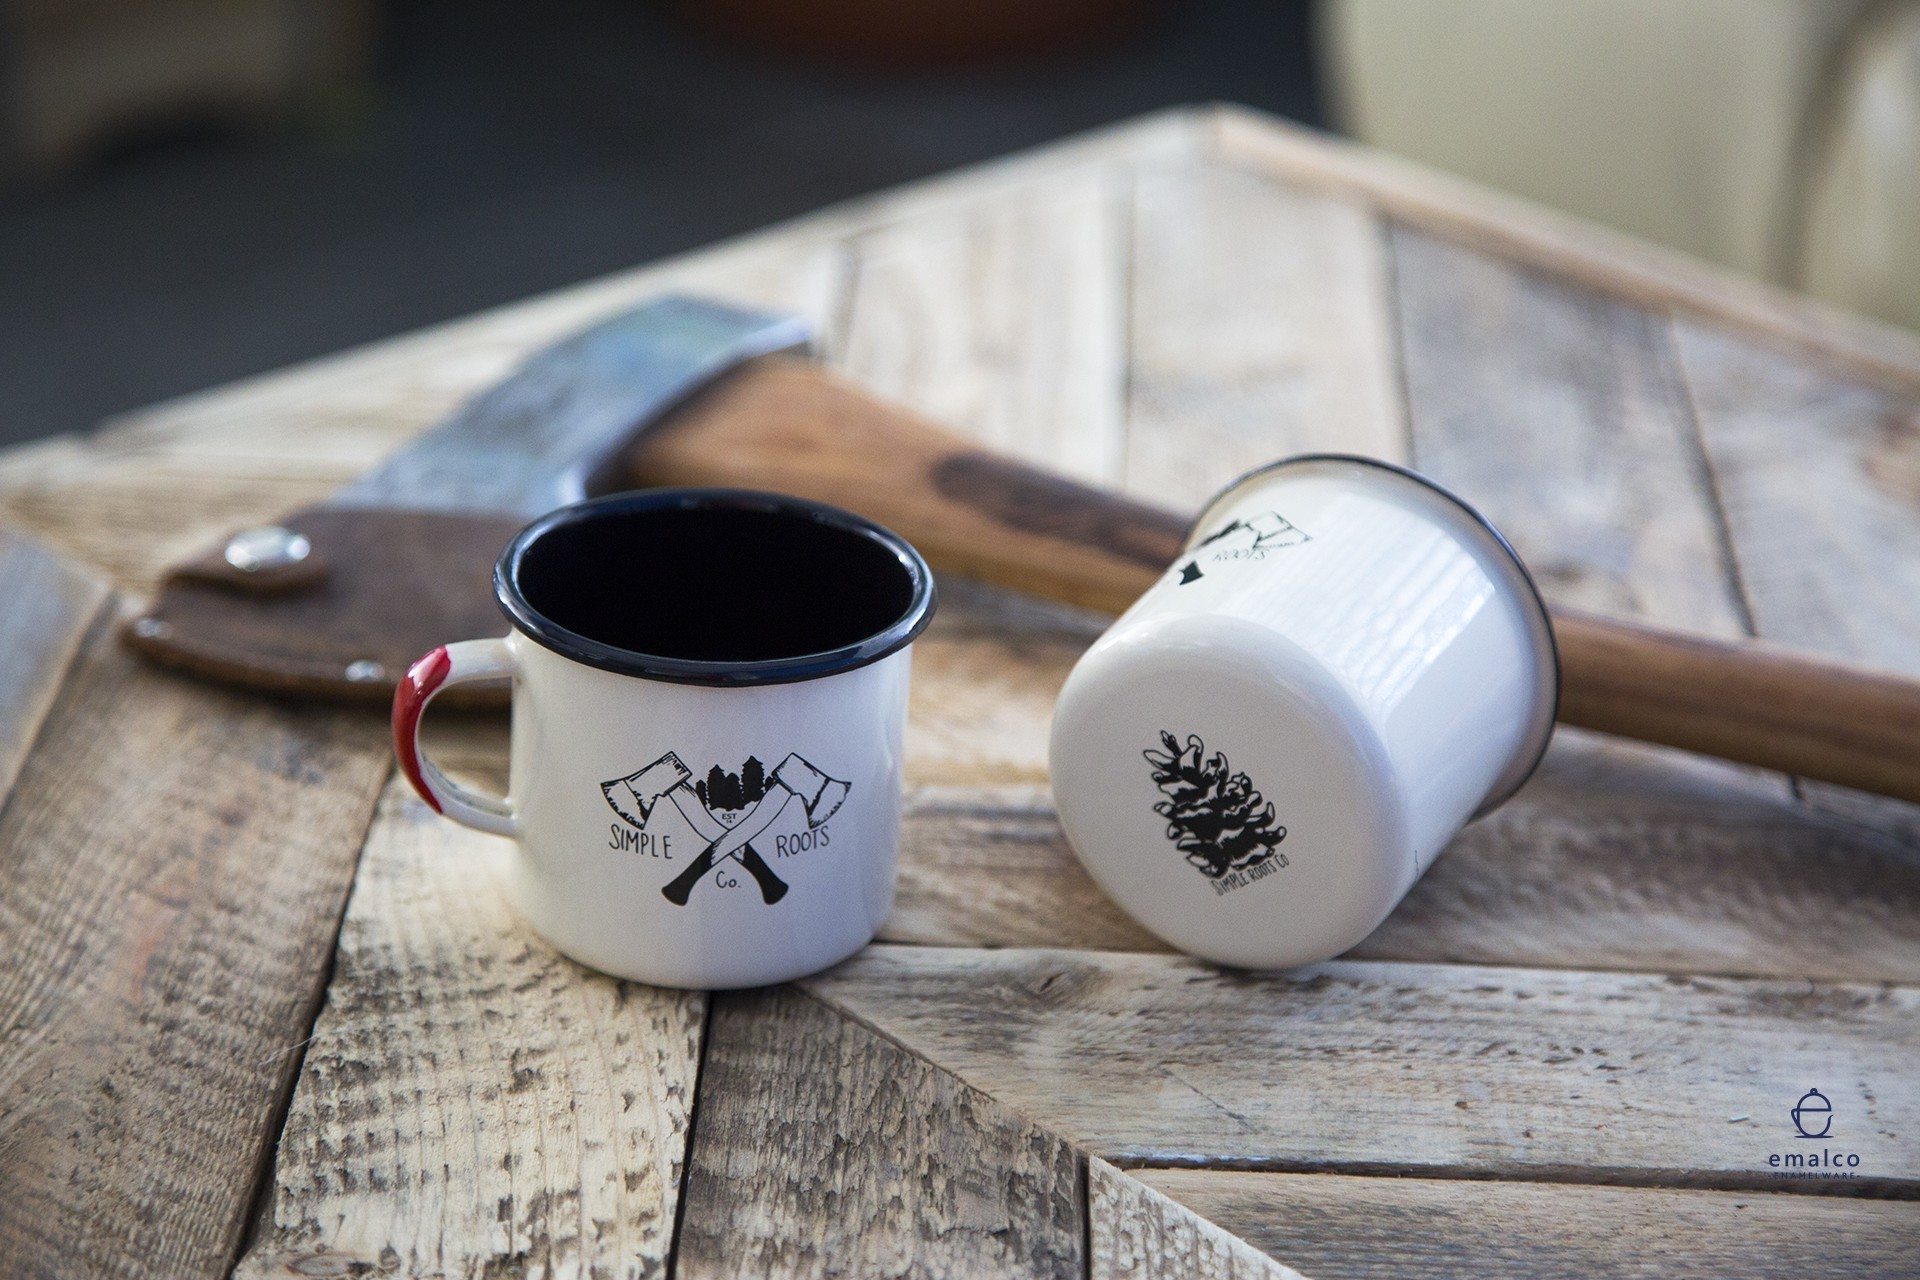 Simple-Roots-Company-mug-7cm-cream-04-1